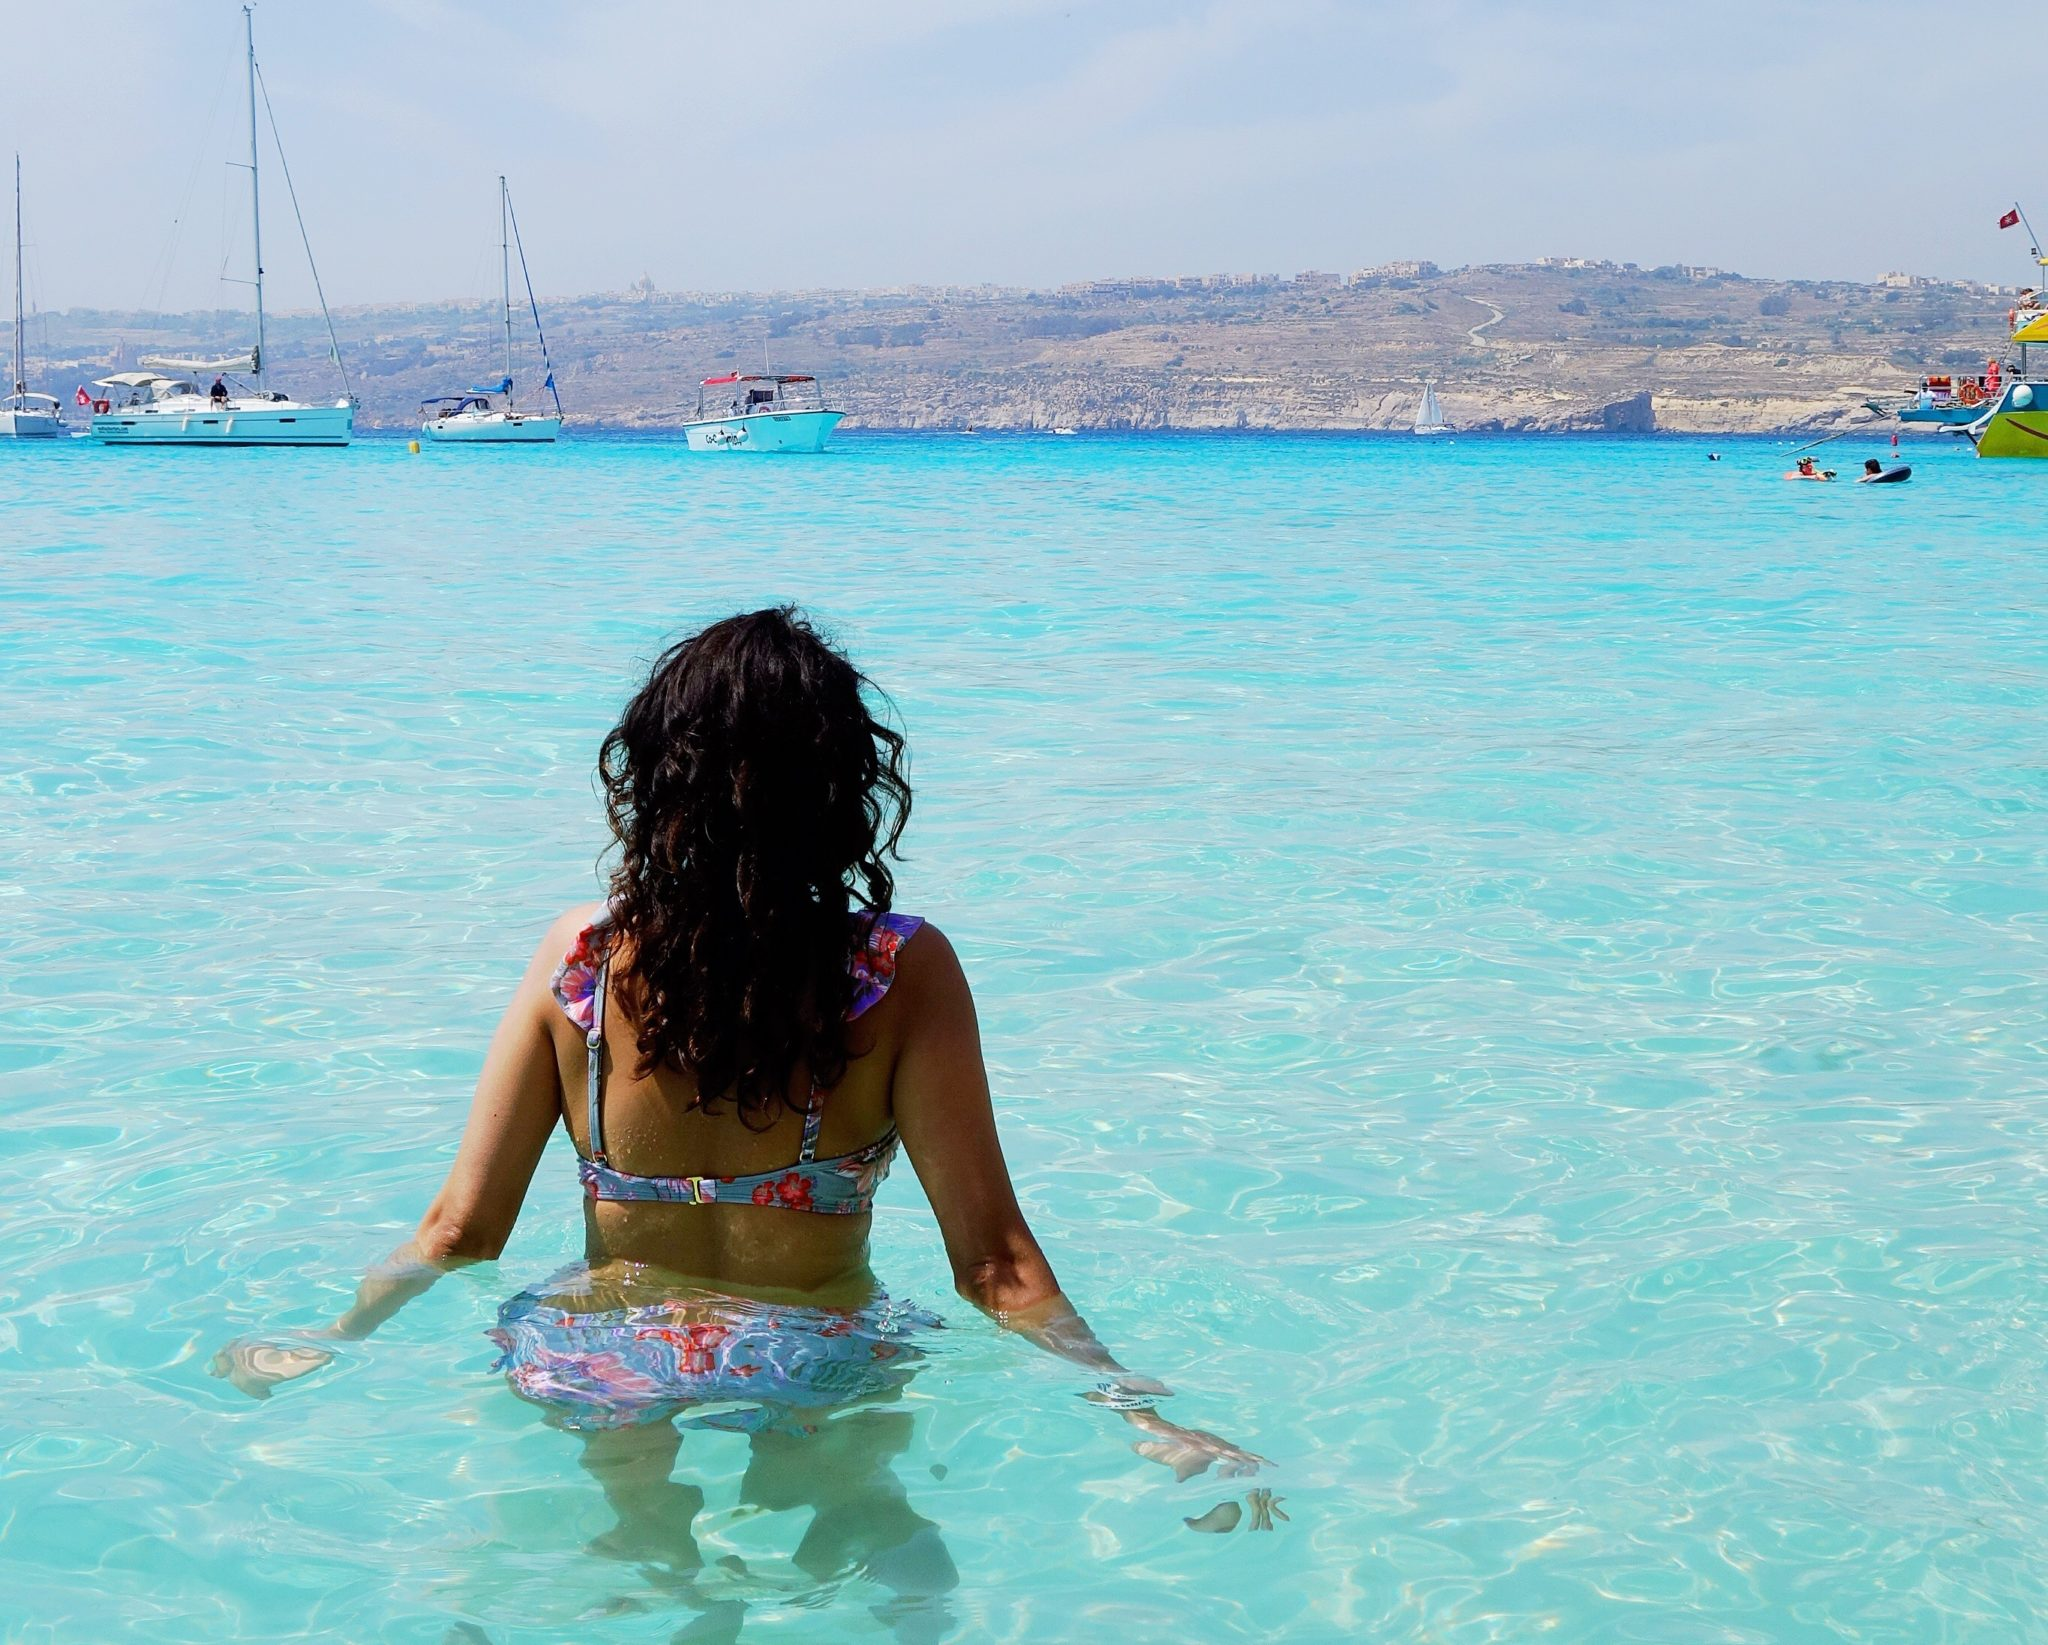 This-is-How-You-Can-See-Malta's-Blue-Lagoon-Zardozi-Magazine